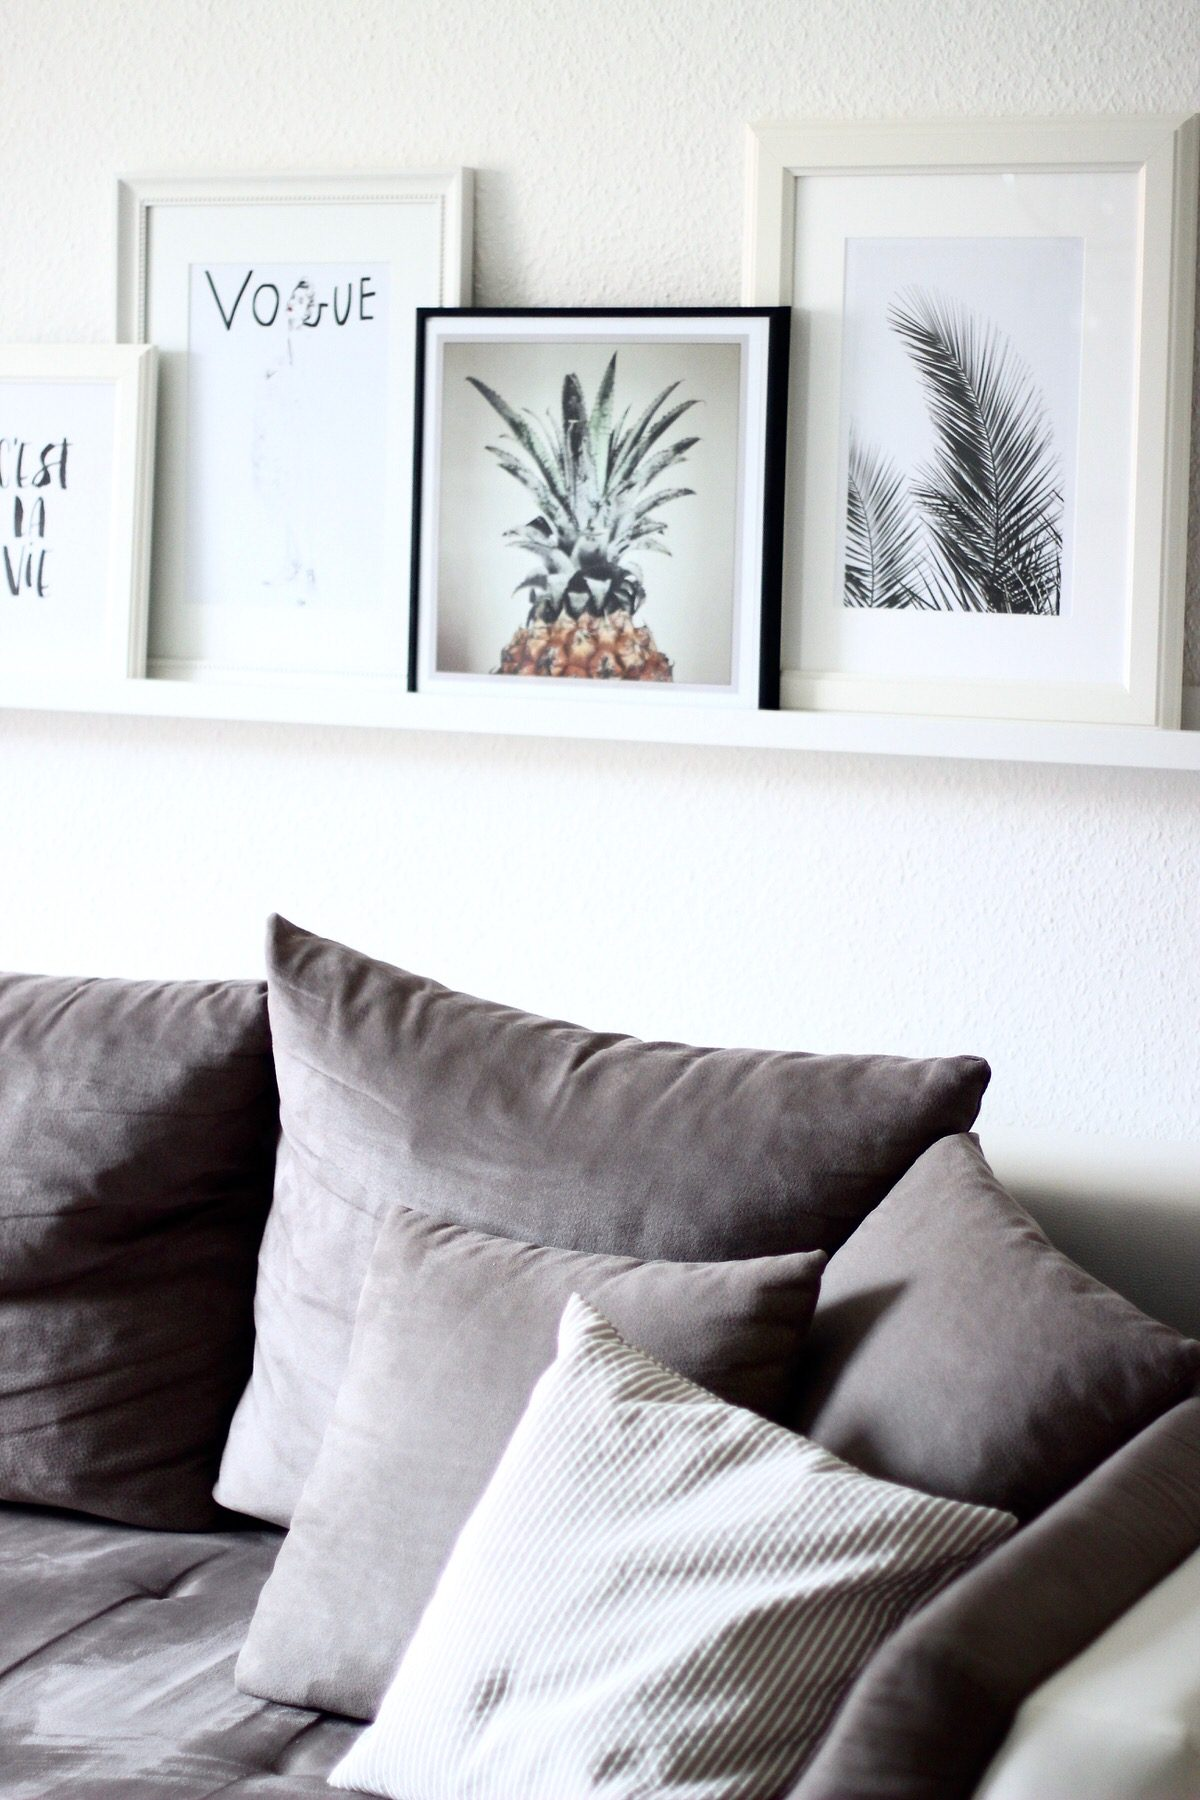 Wohnungsupdate, room tour, interior, juniqe, Poster, Dekoration, Ikea